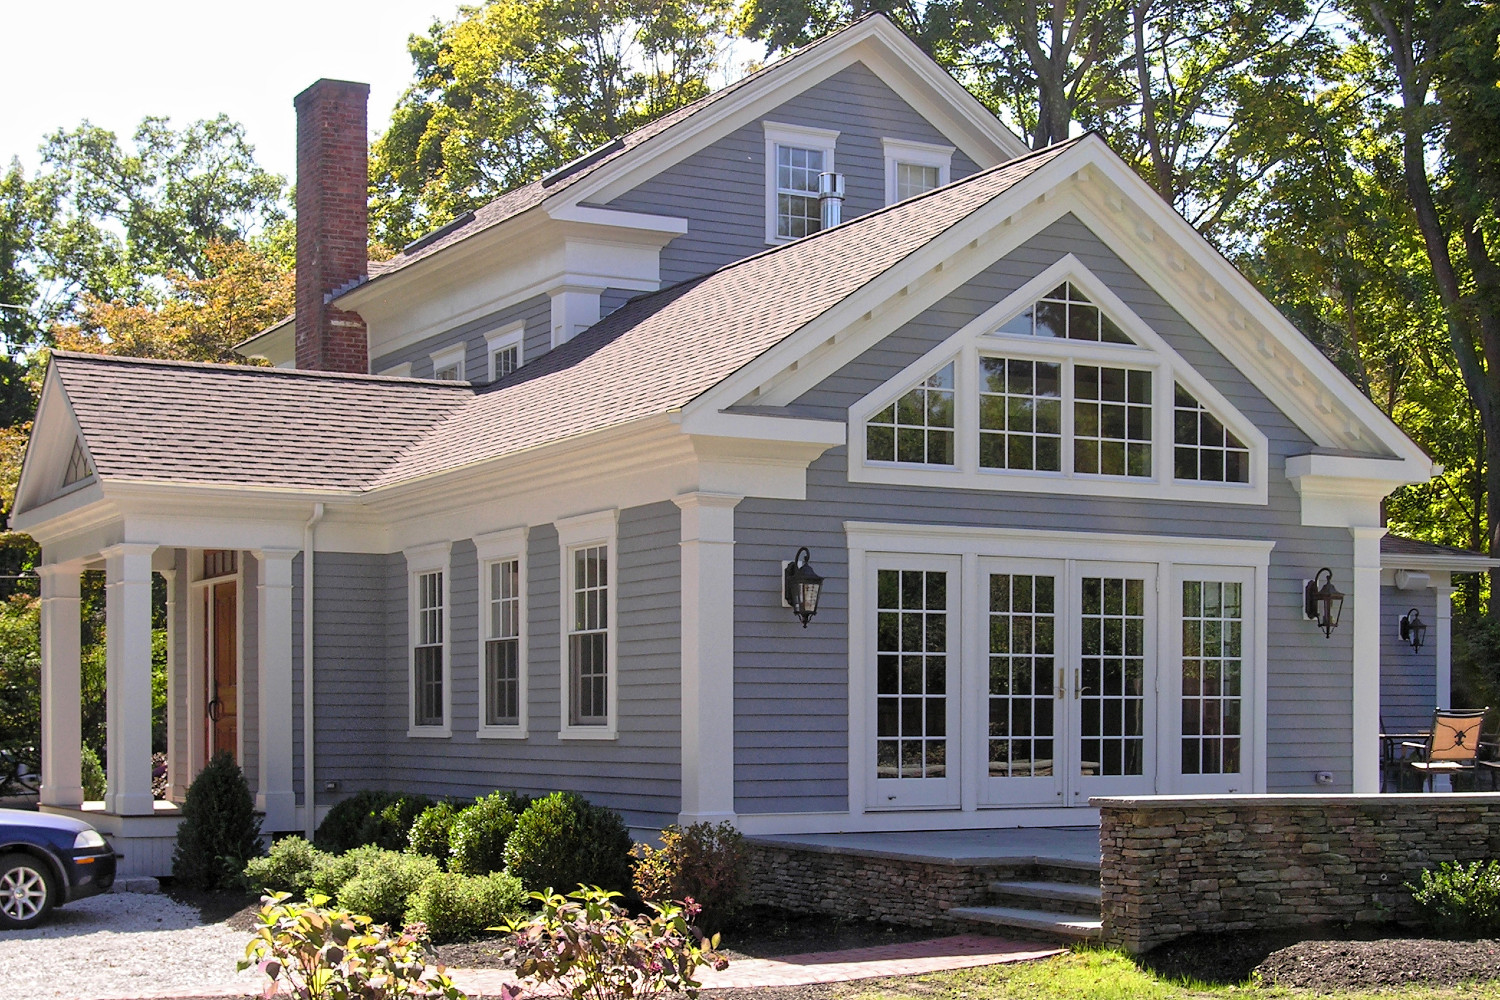 GREEK REVIVAL REMODEL AND ADDITION